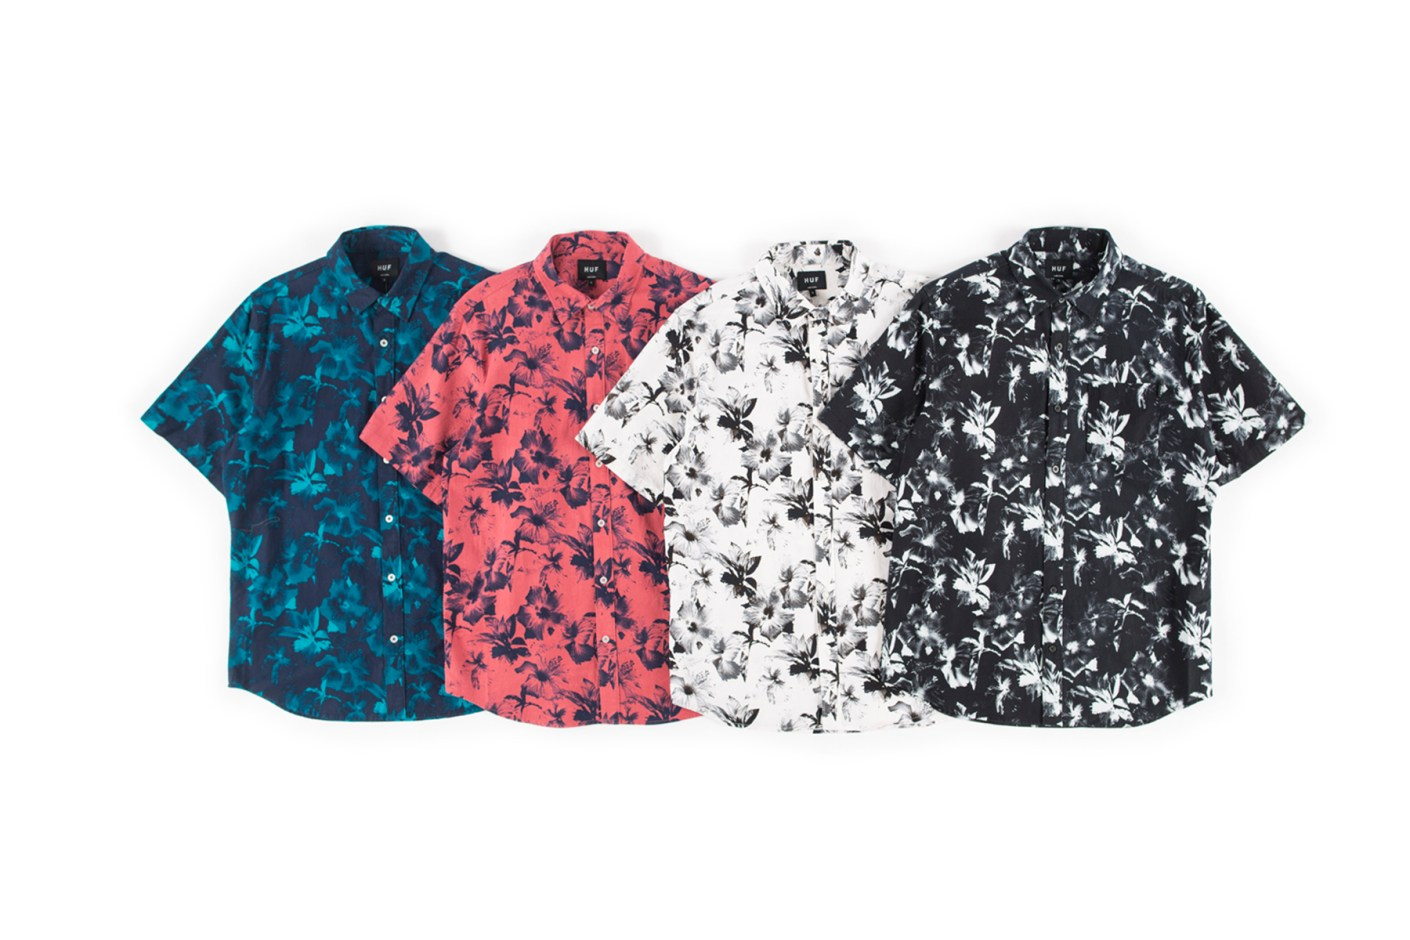 Image of HUF 2014 Spring/Summer Apparel Collection